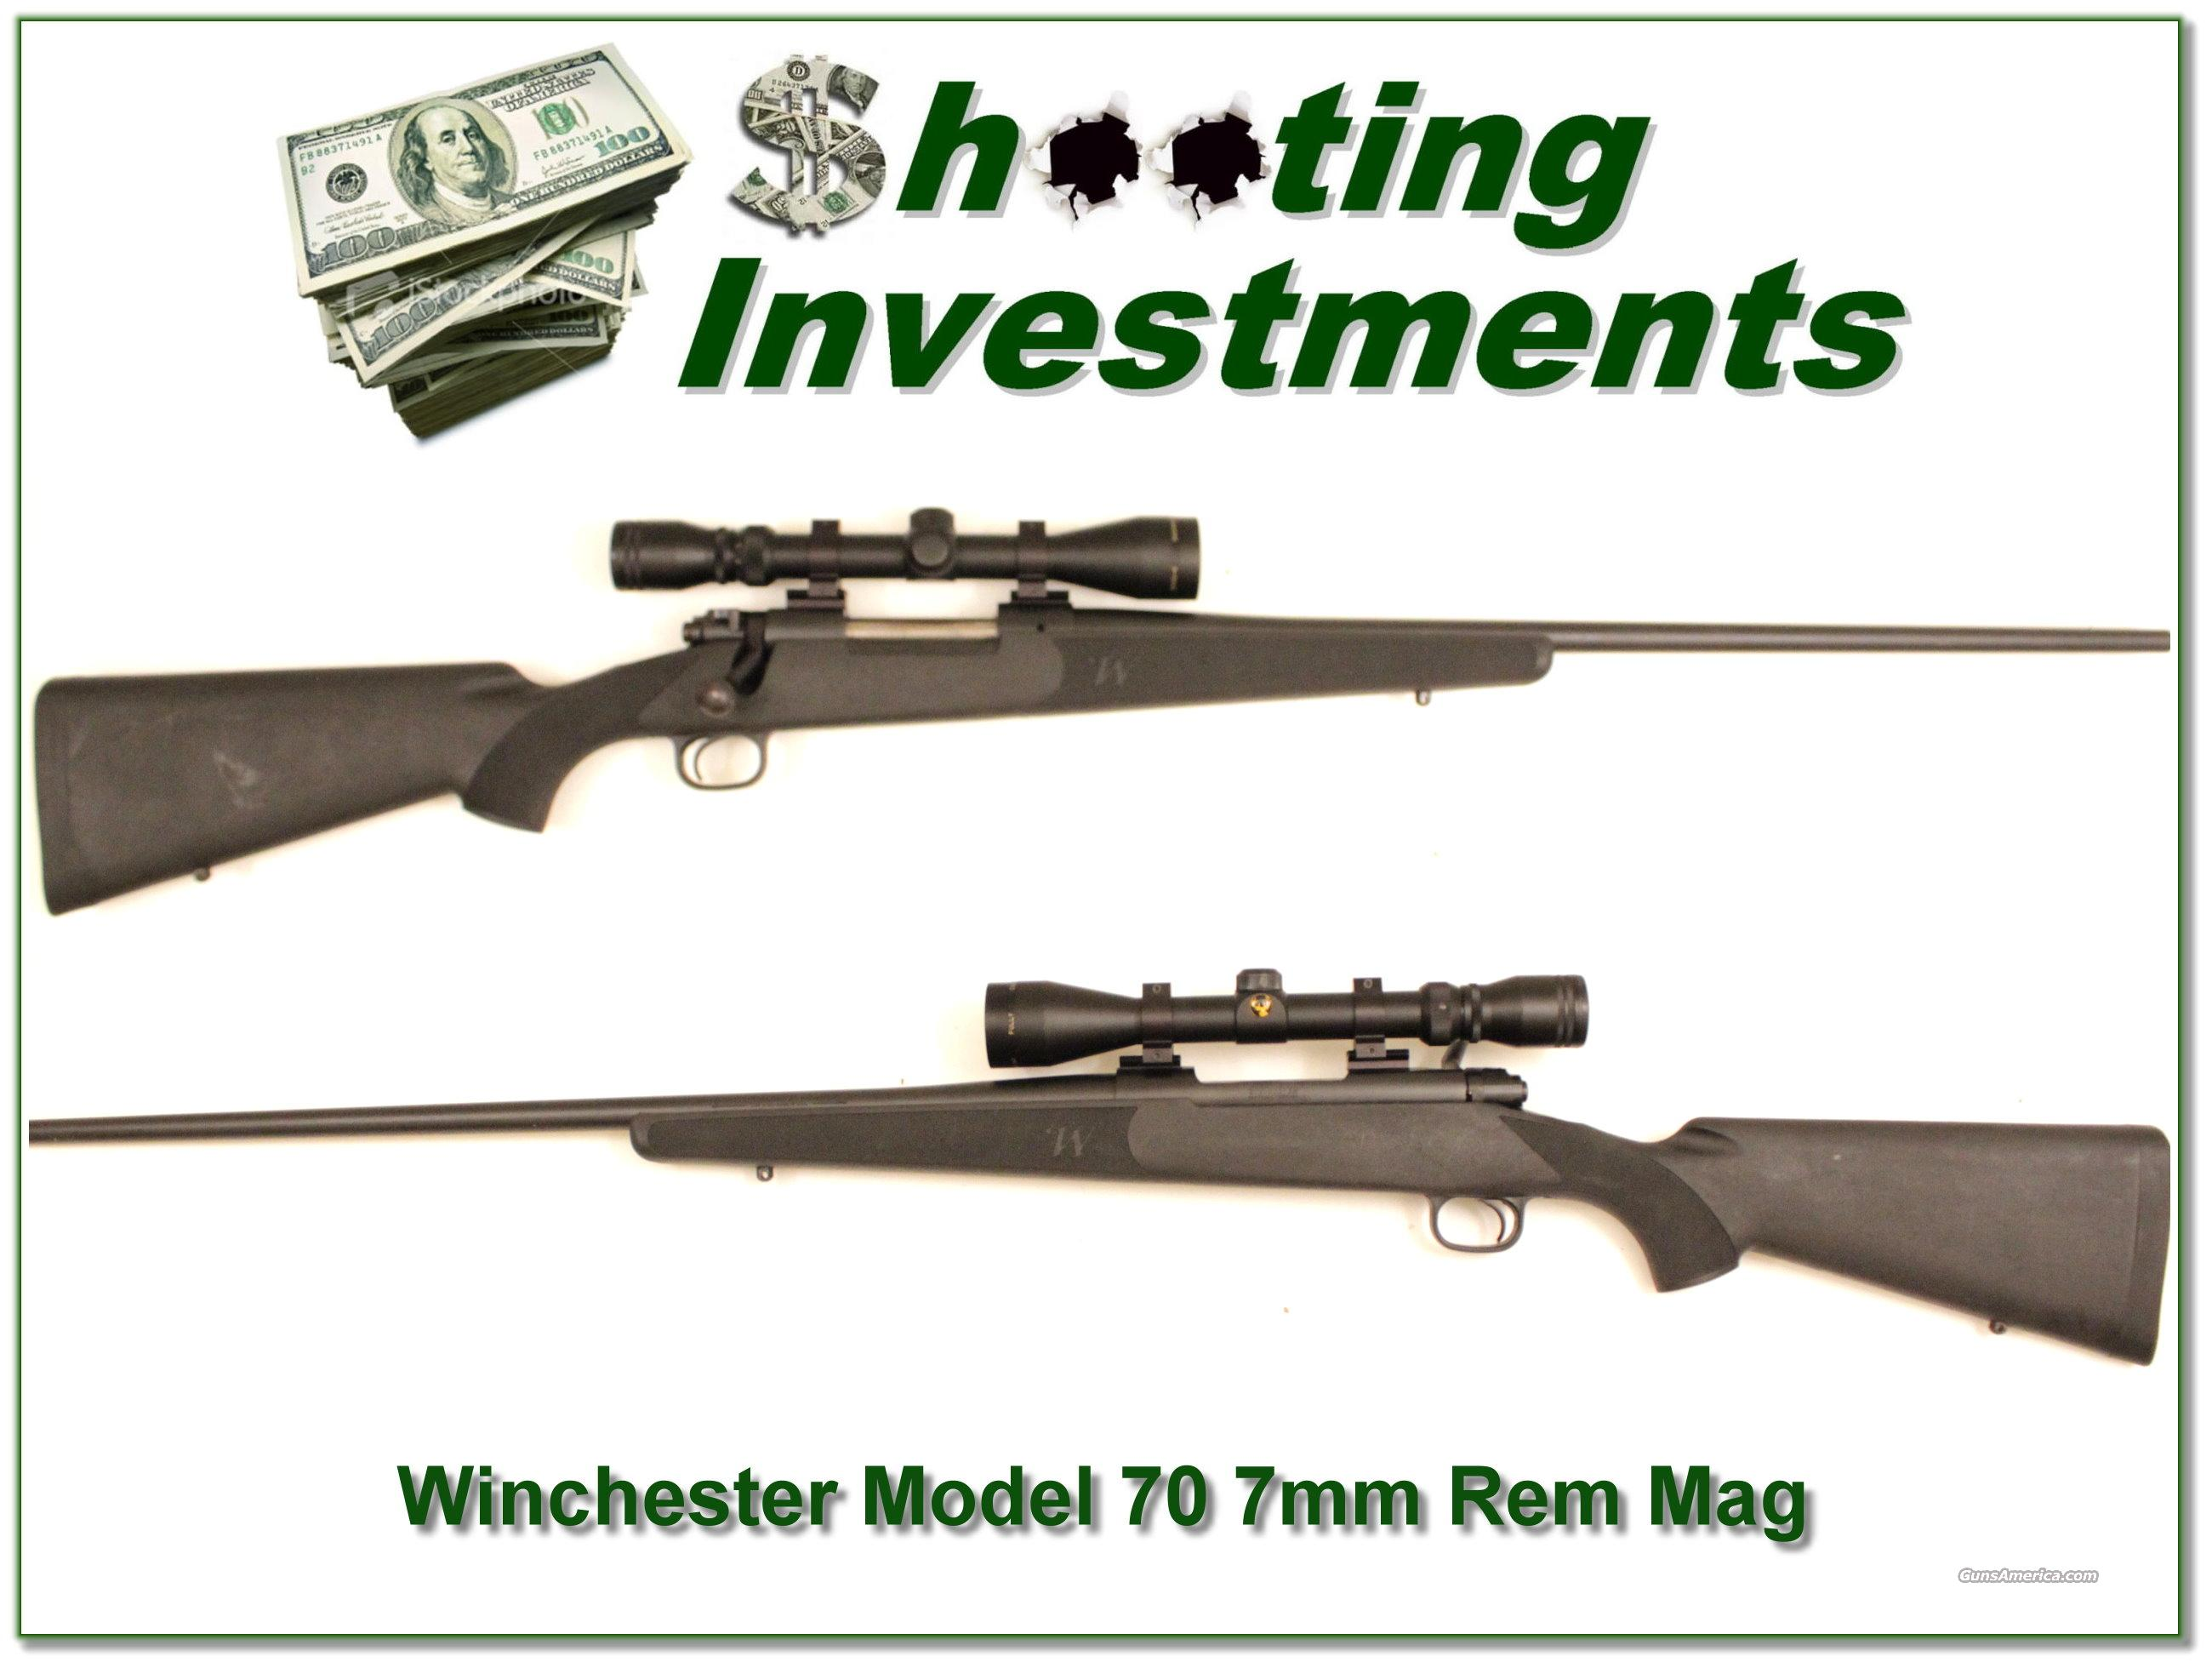 Winchester 70 Blue Synthetic 7mm Rem Mag w Scope  Guns > Rifles > Winchester Rifles - Modern Bolt/Auto/Single > Model 70 > Post-64